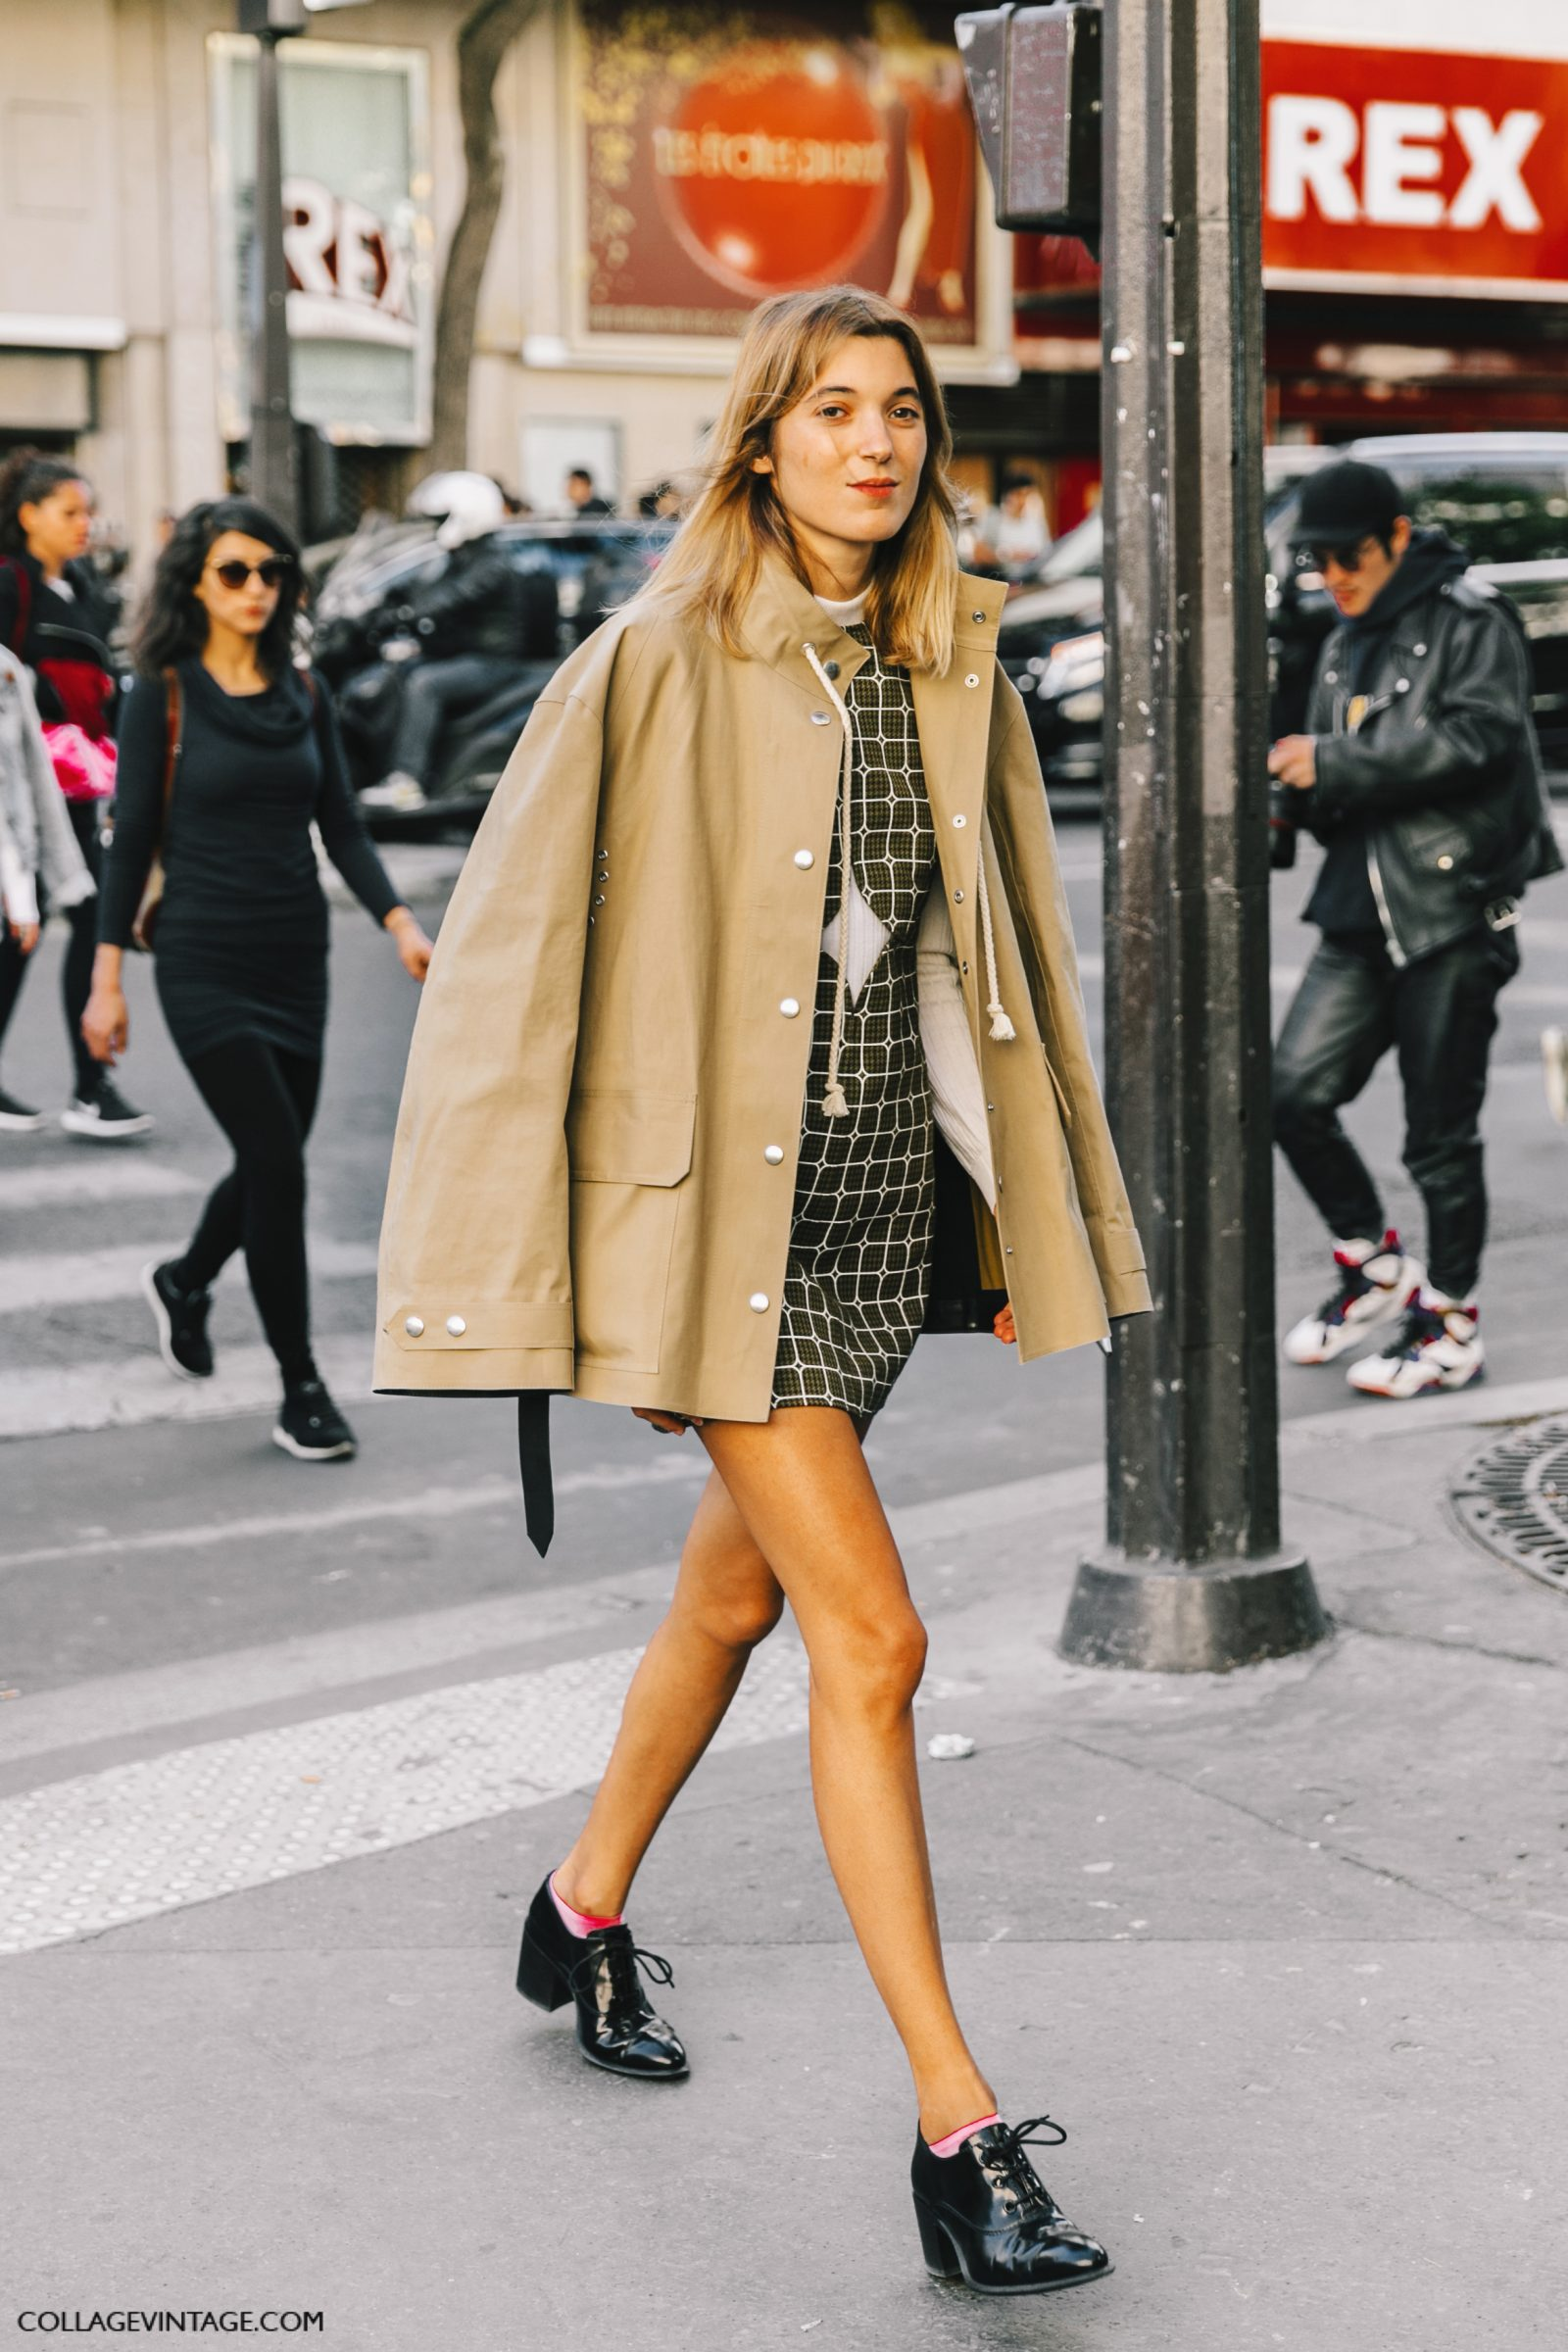 pfw-paris_fashion_week_ss17-street_style-outfits-collage_vintage-olympia_letan-hermes-stella_mccartney-sacai-197